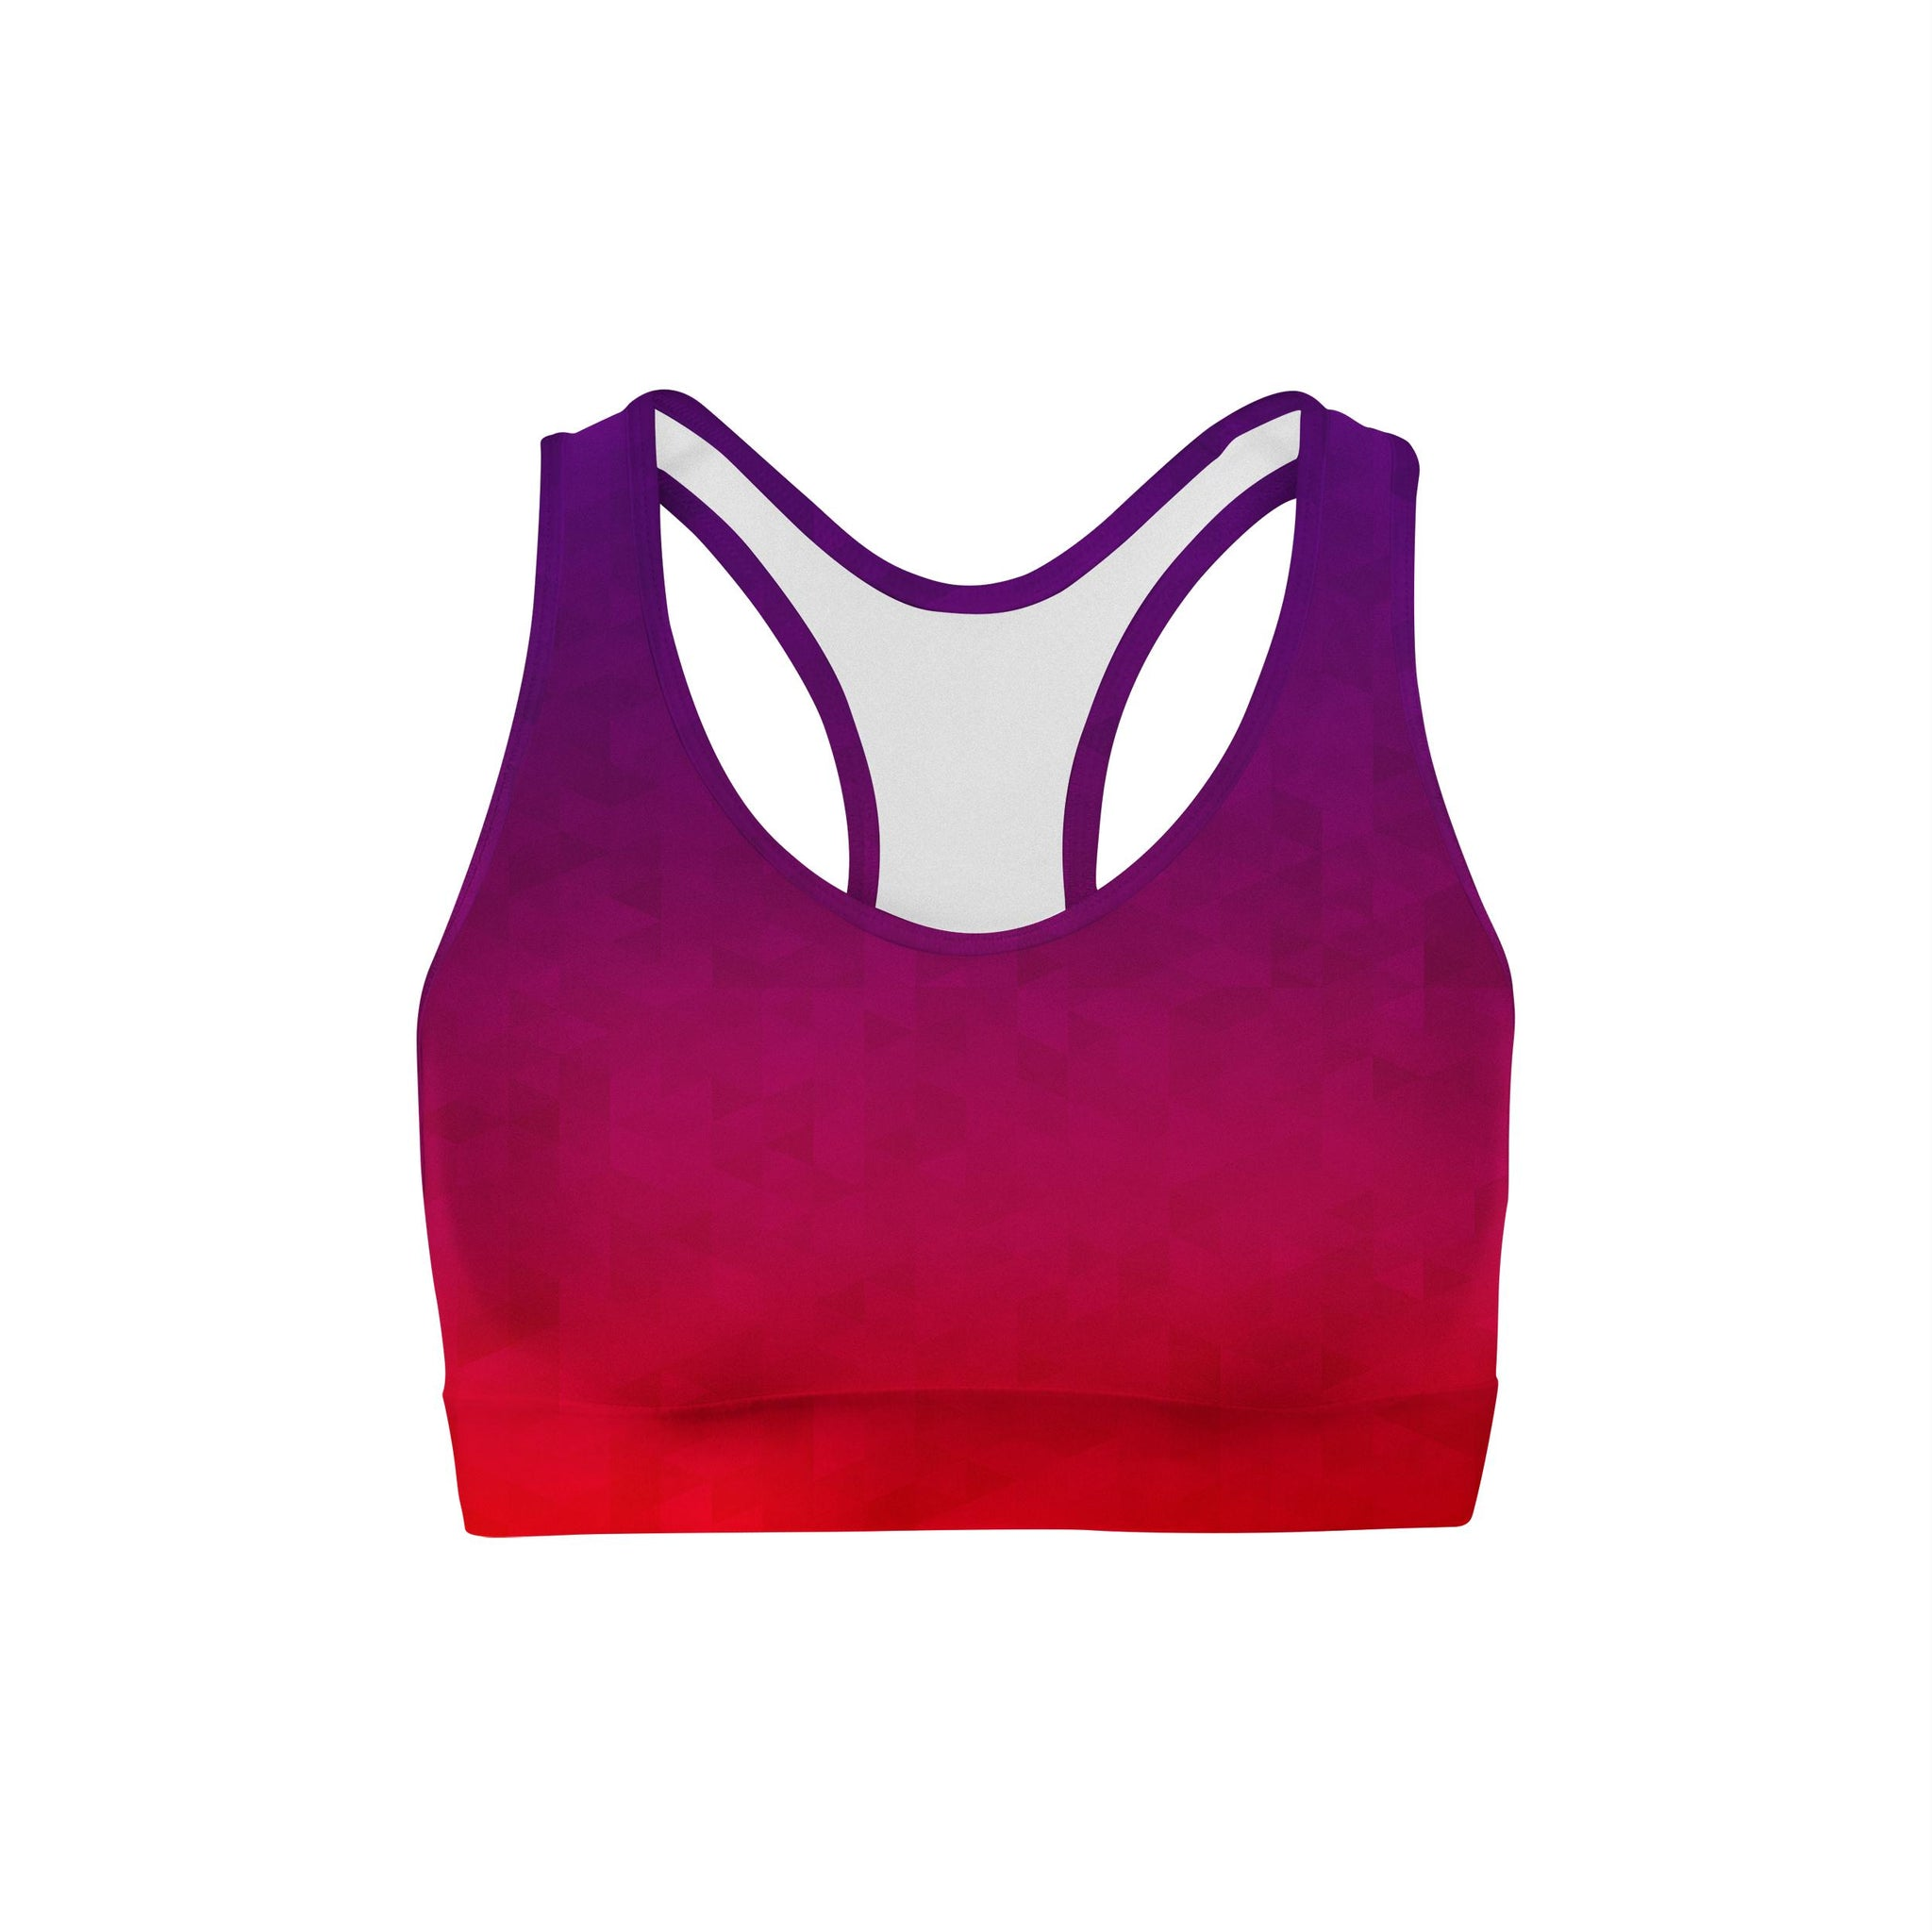 Prism Fusion Purple Sports Bra